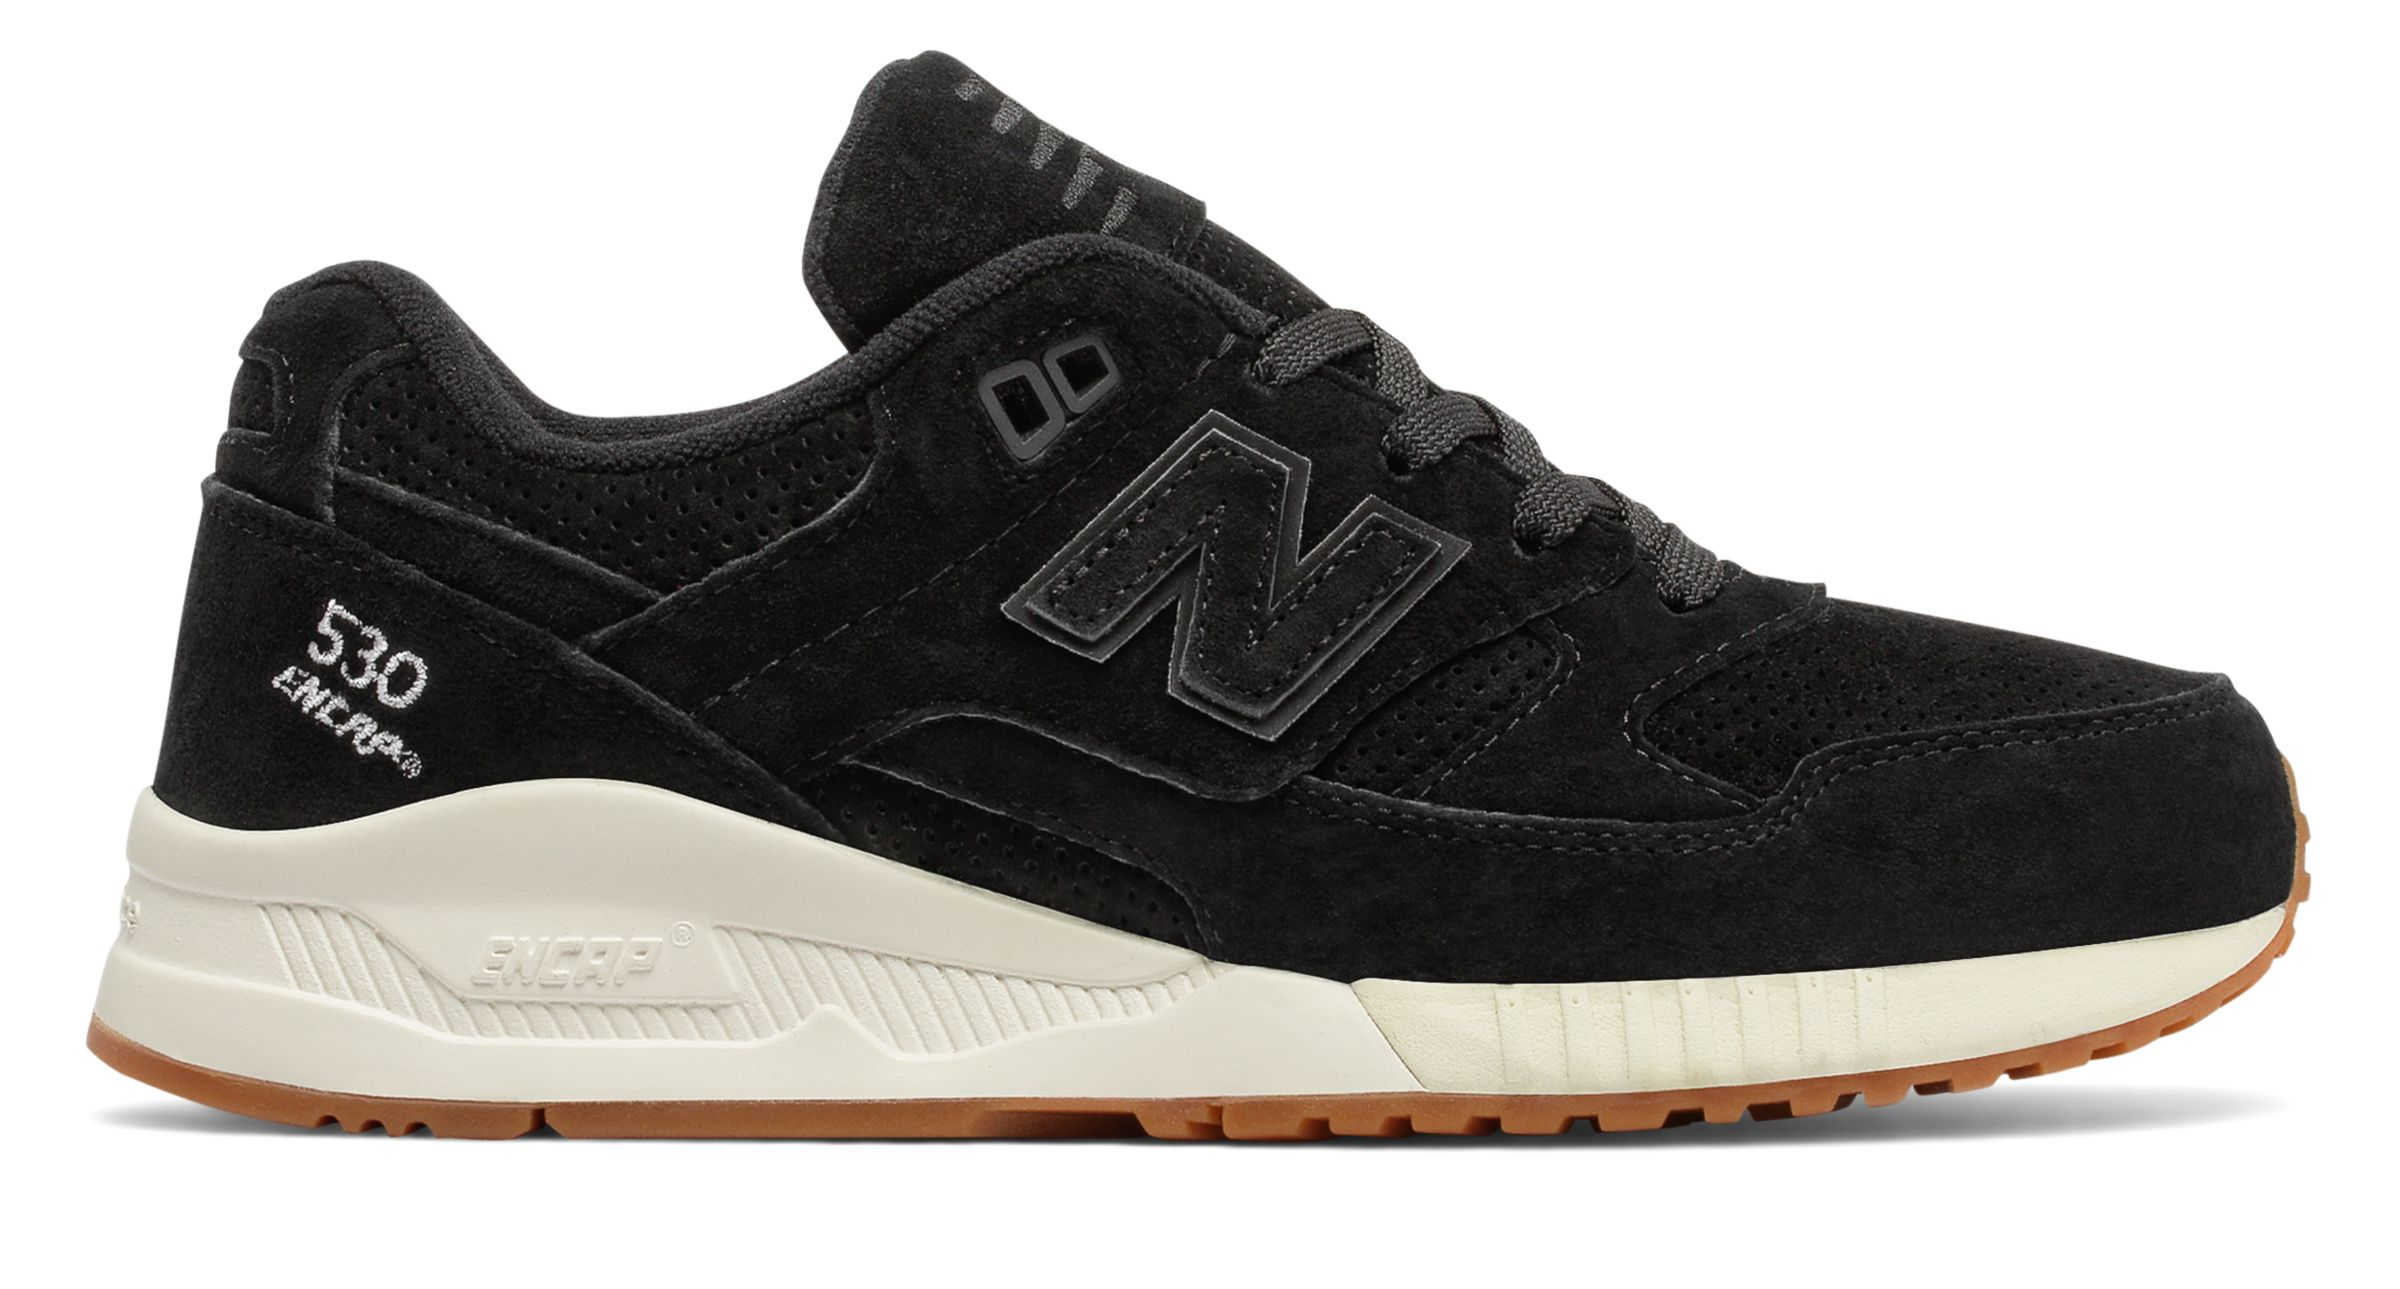 Click here for New Balance 530 Lux Suede Women's Shoes W530PRA prices